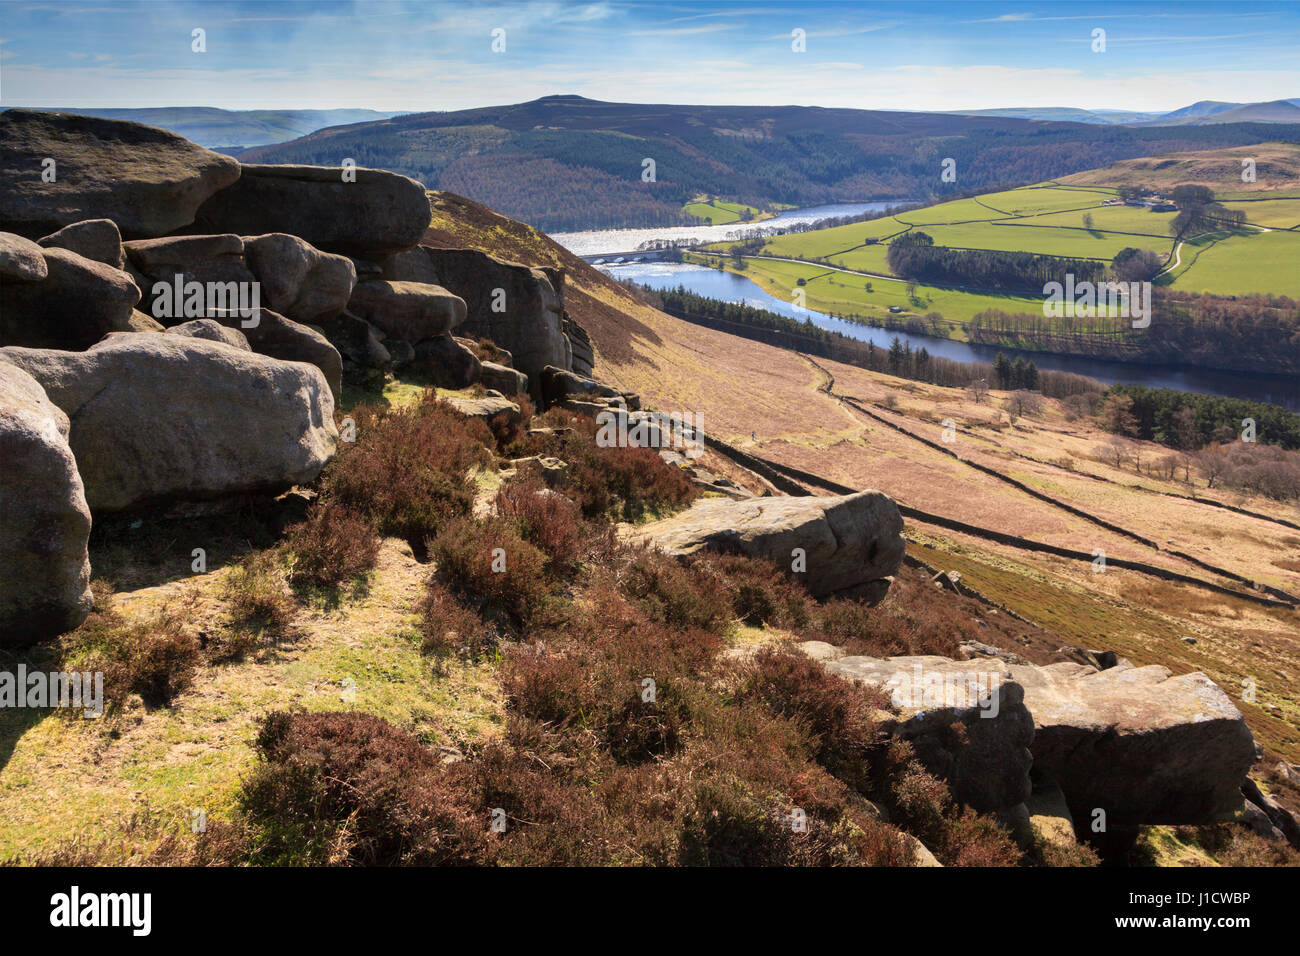 Winstone Lee Tor on Derwent Edge in the Peak District National Park - Stock Image